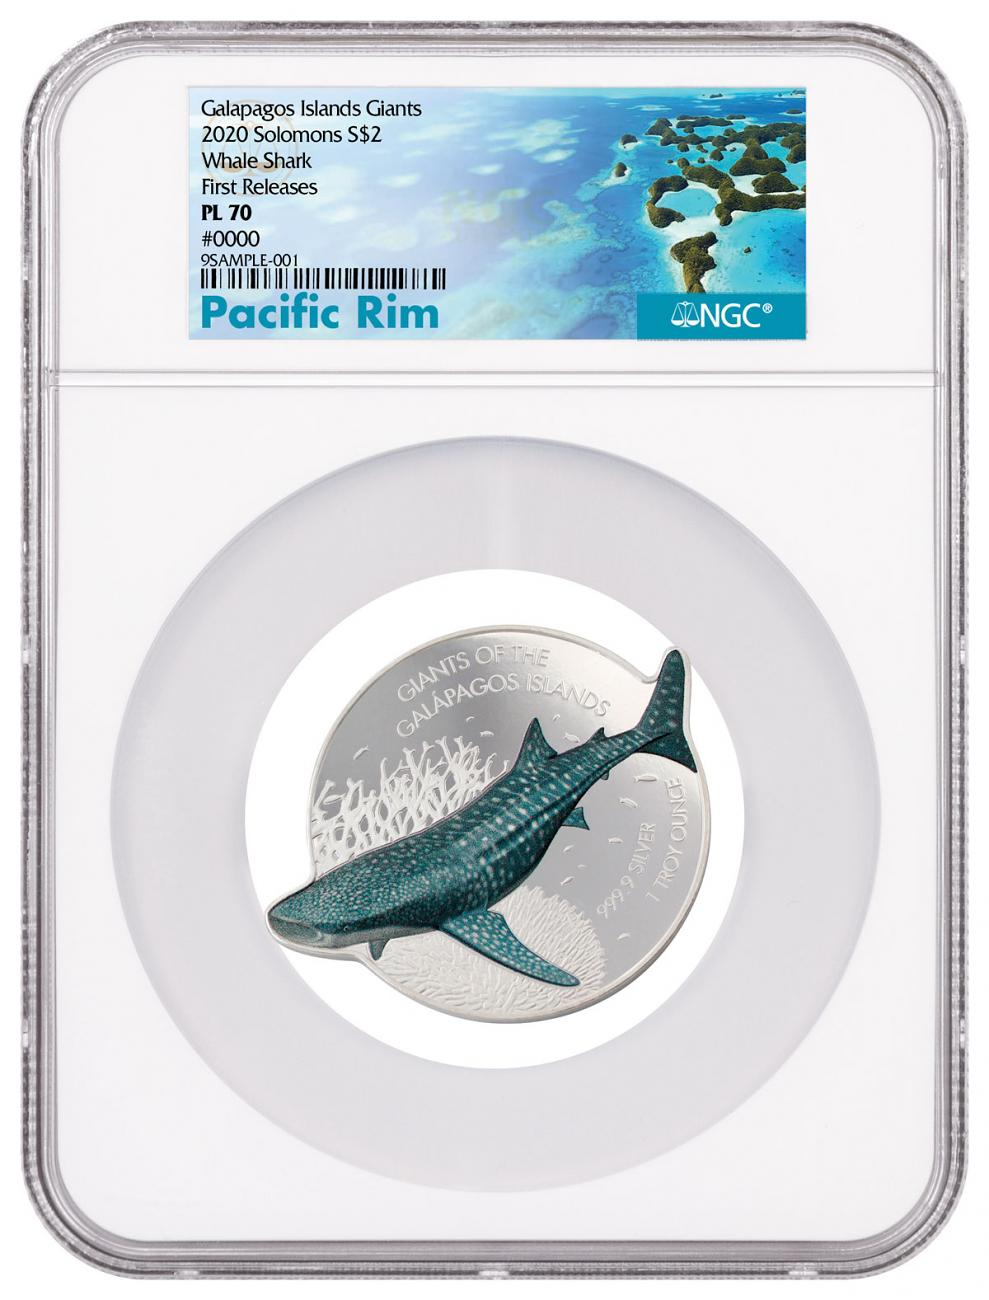 2021 Solomon Islands Giants of Galapagos - Whale Shark Shaped 1 oz Silver Proof Like $2 Coin NGC PL70 FR Exclusive Pacific Rim Label